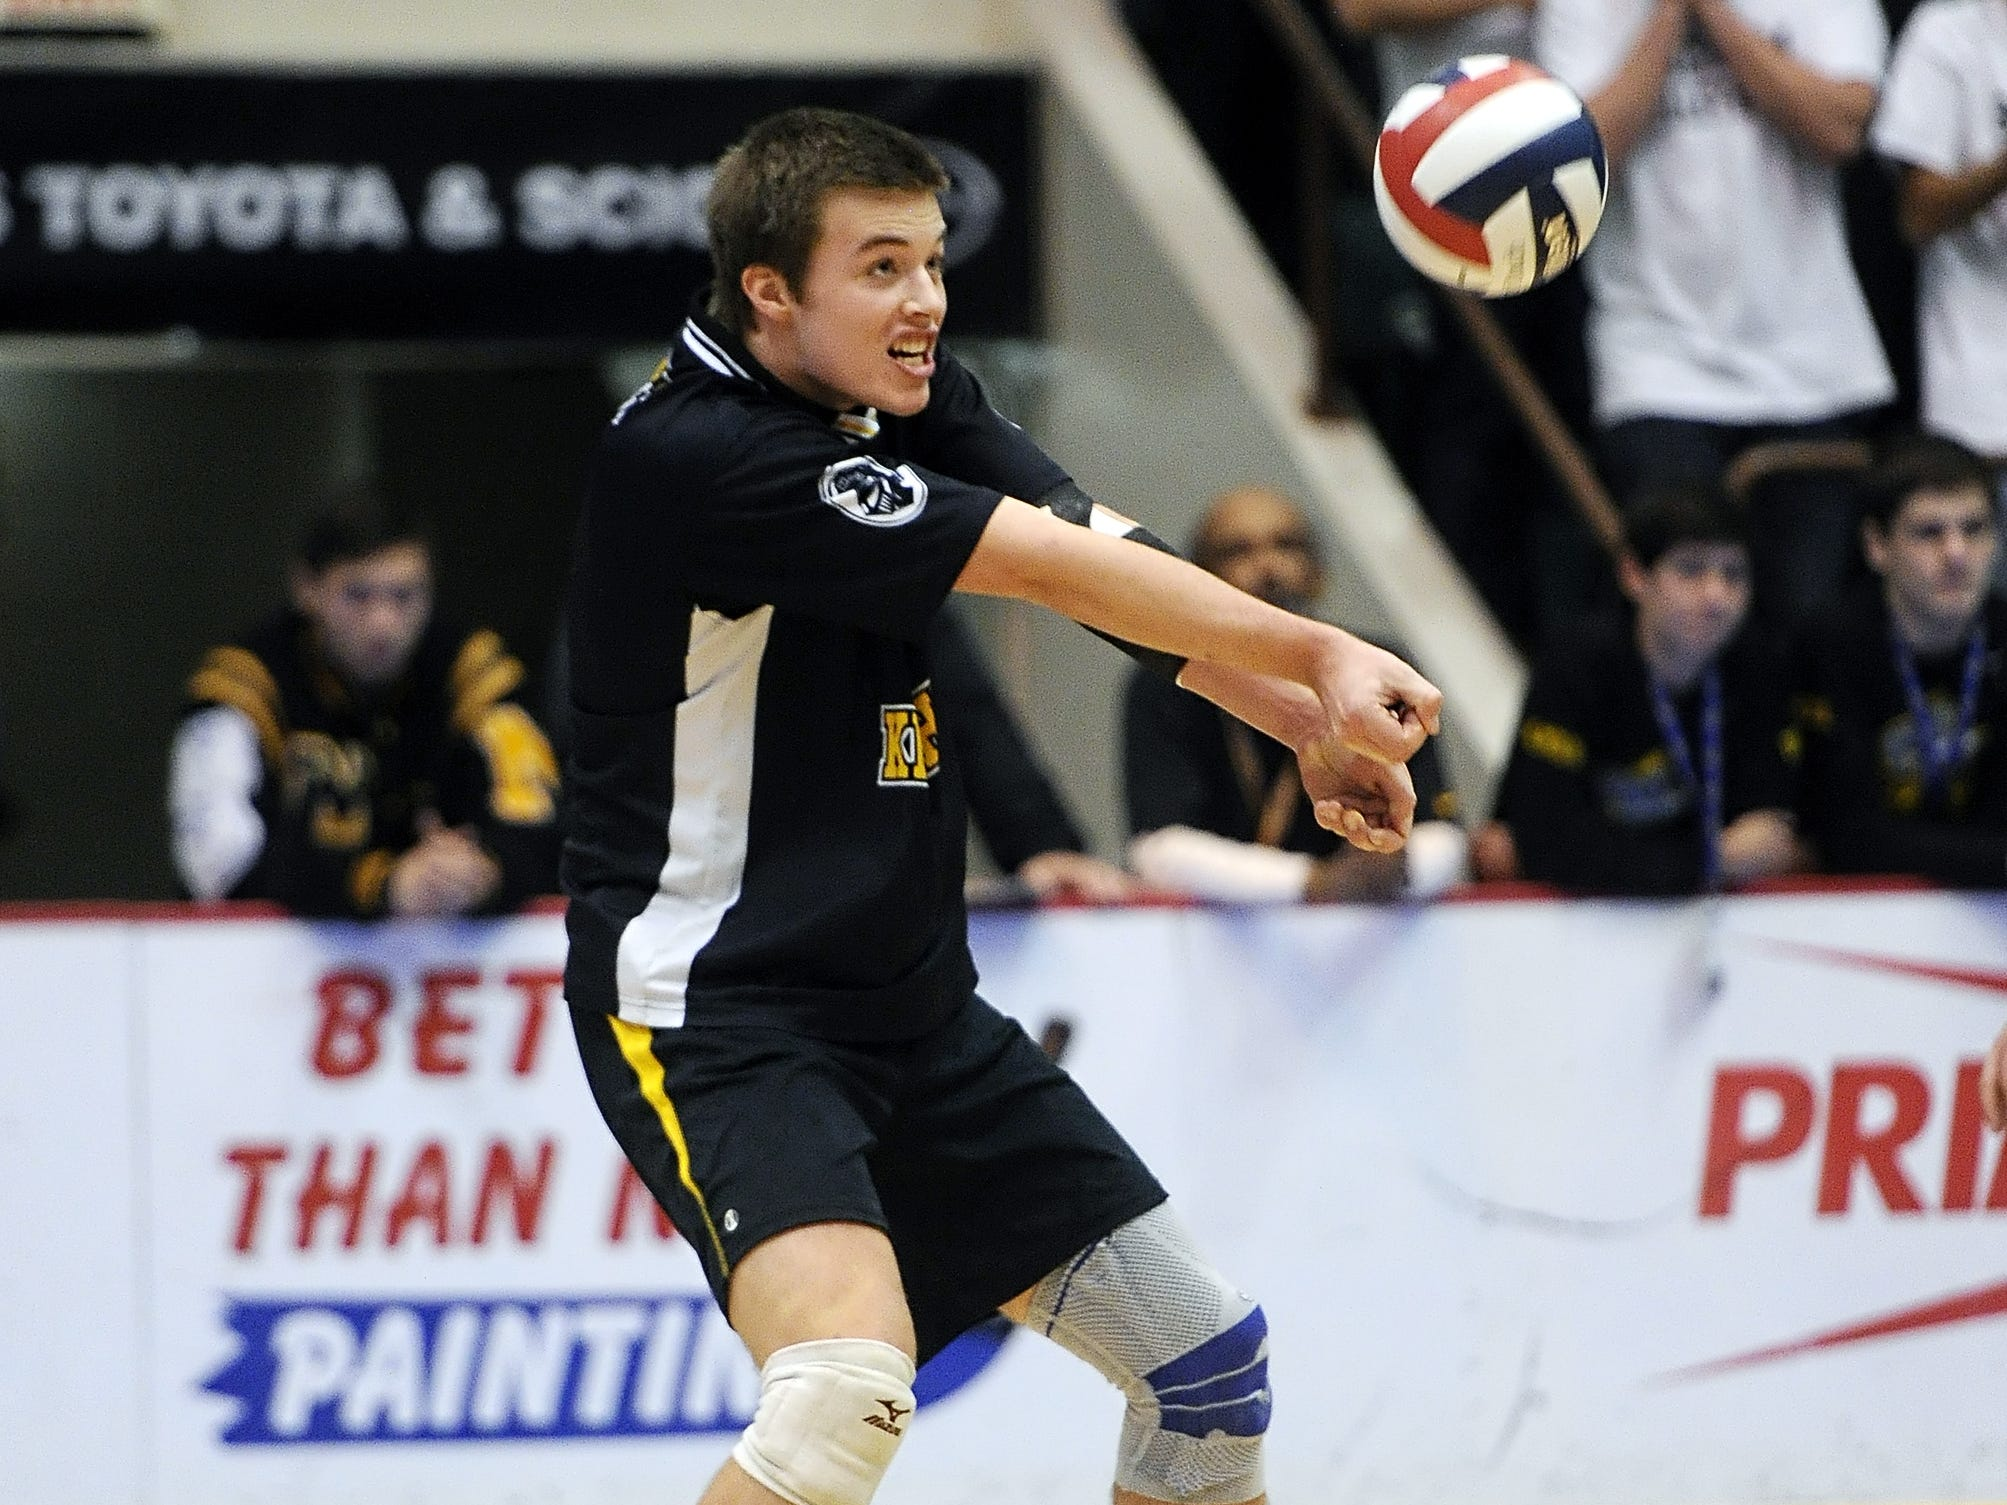 McQuaid's T. Riley Dolan receives serve against Sachem North during the Division 1 final at the NYSPHSAA Boy's Volleyball Championships held at the Glens Falls Civic Center on Friday, November 11, 2014.  McQuaid lost the final to Sachem North-XI in four games (22-25, 22-25, 25-21, 18-25).